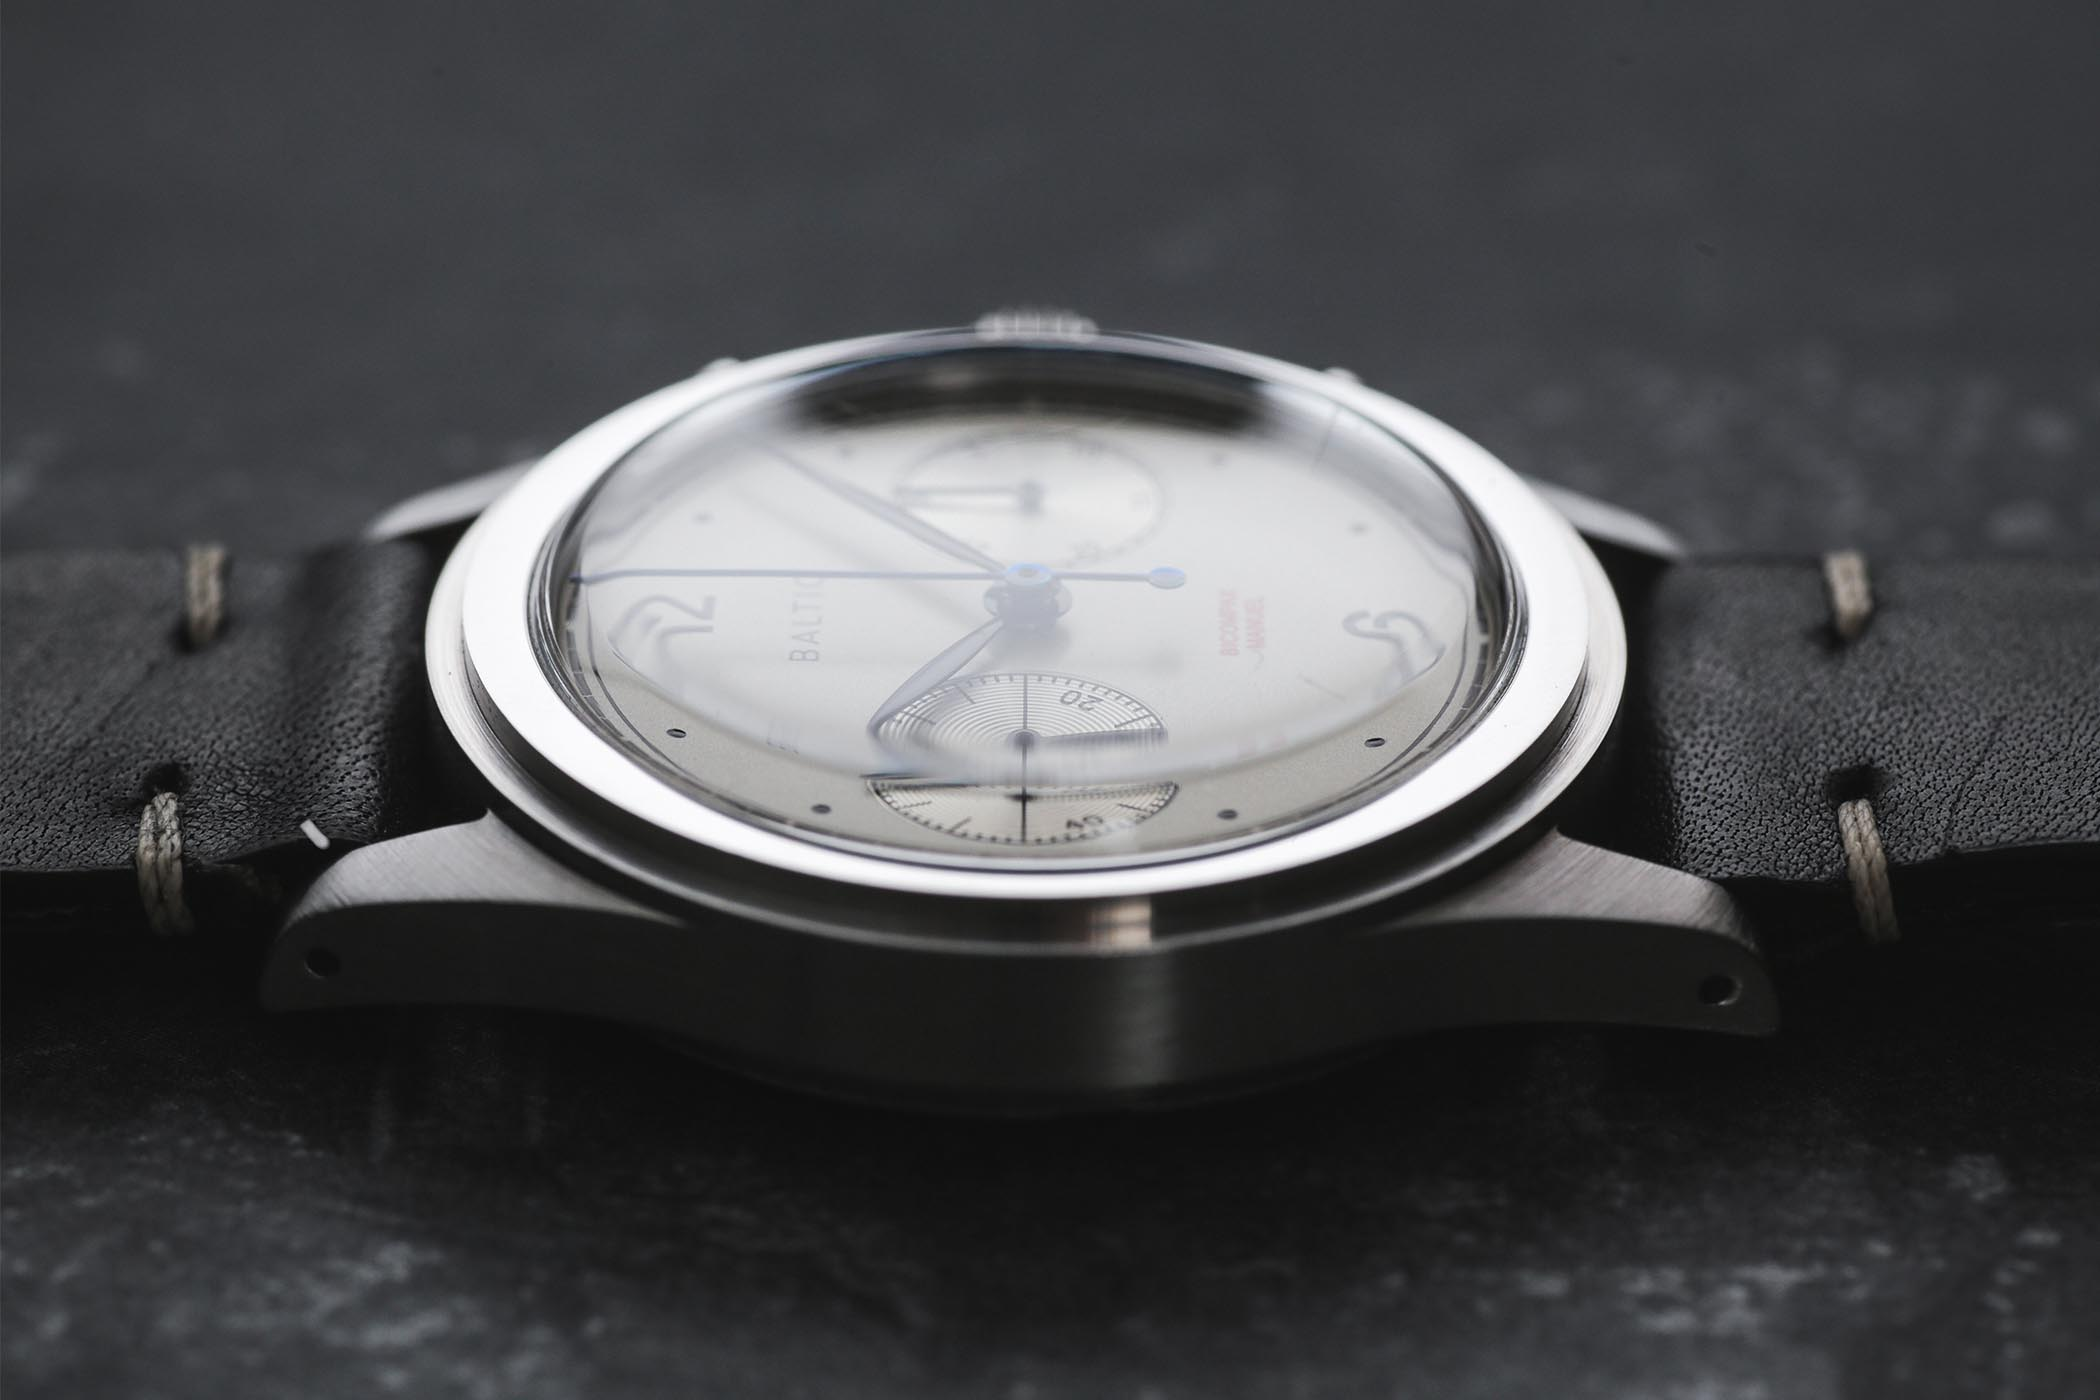 Baltic Watches bicompax 001